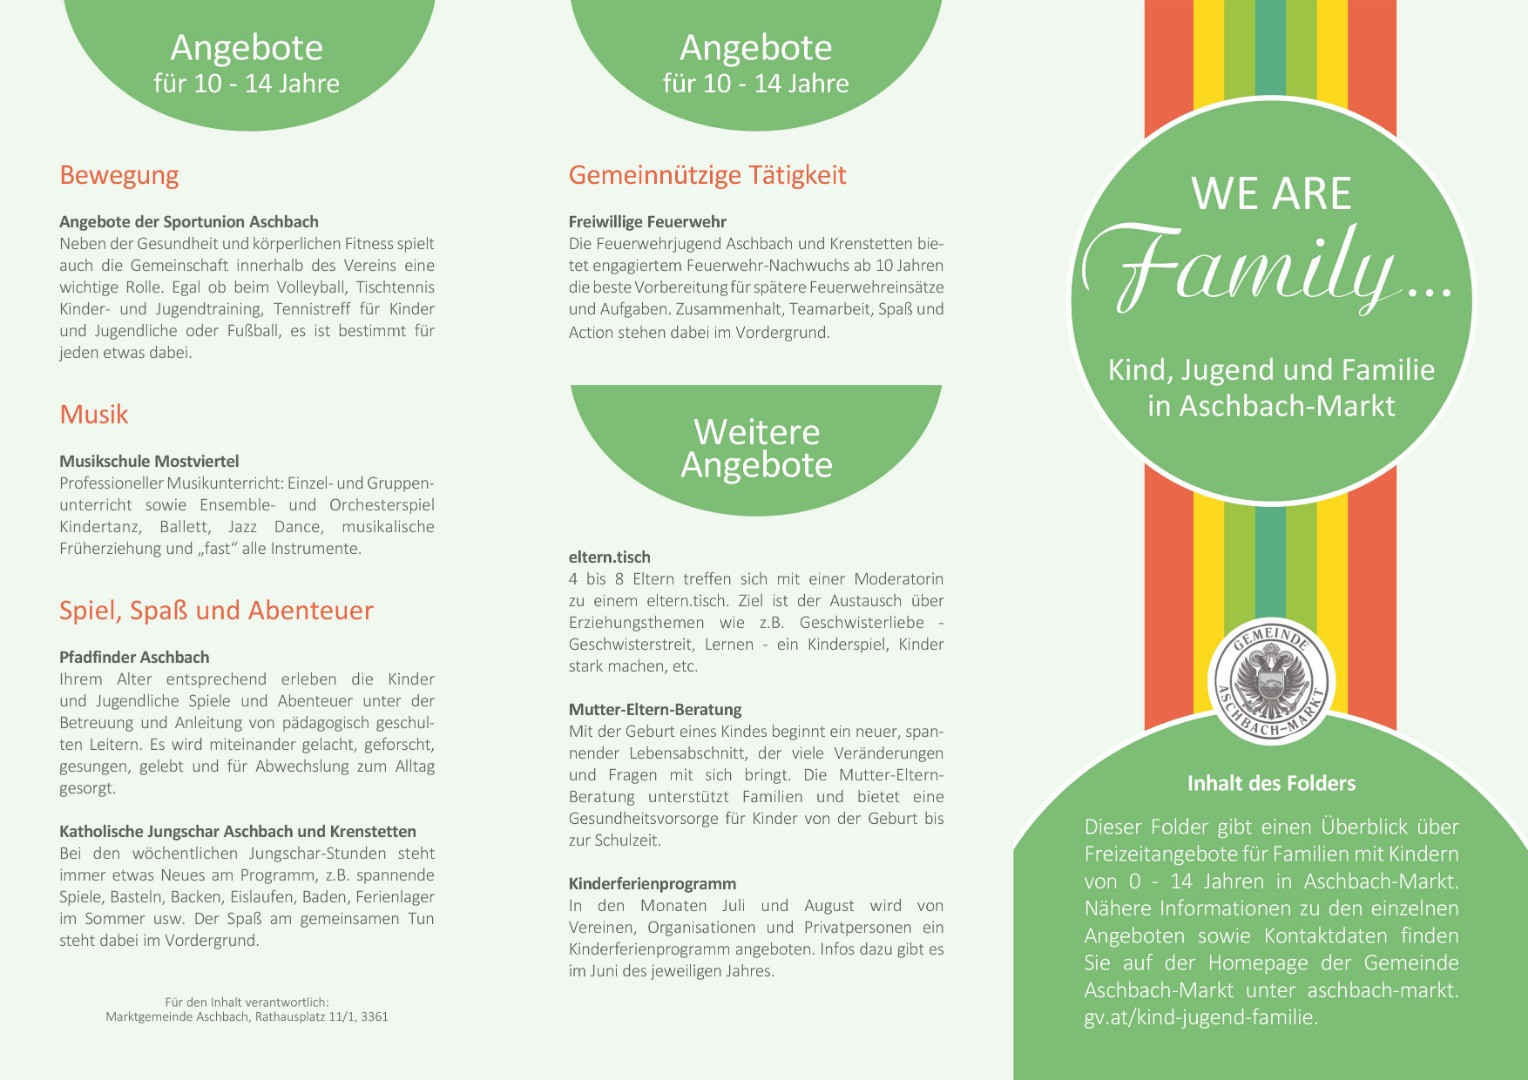 Folder_WE ARE FAMILY_Kind, Jugend und Familie-1.jpg